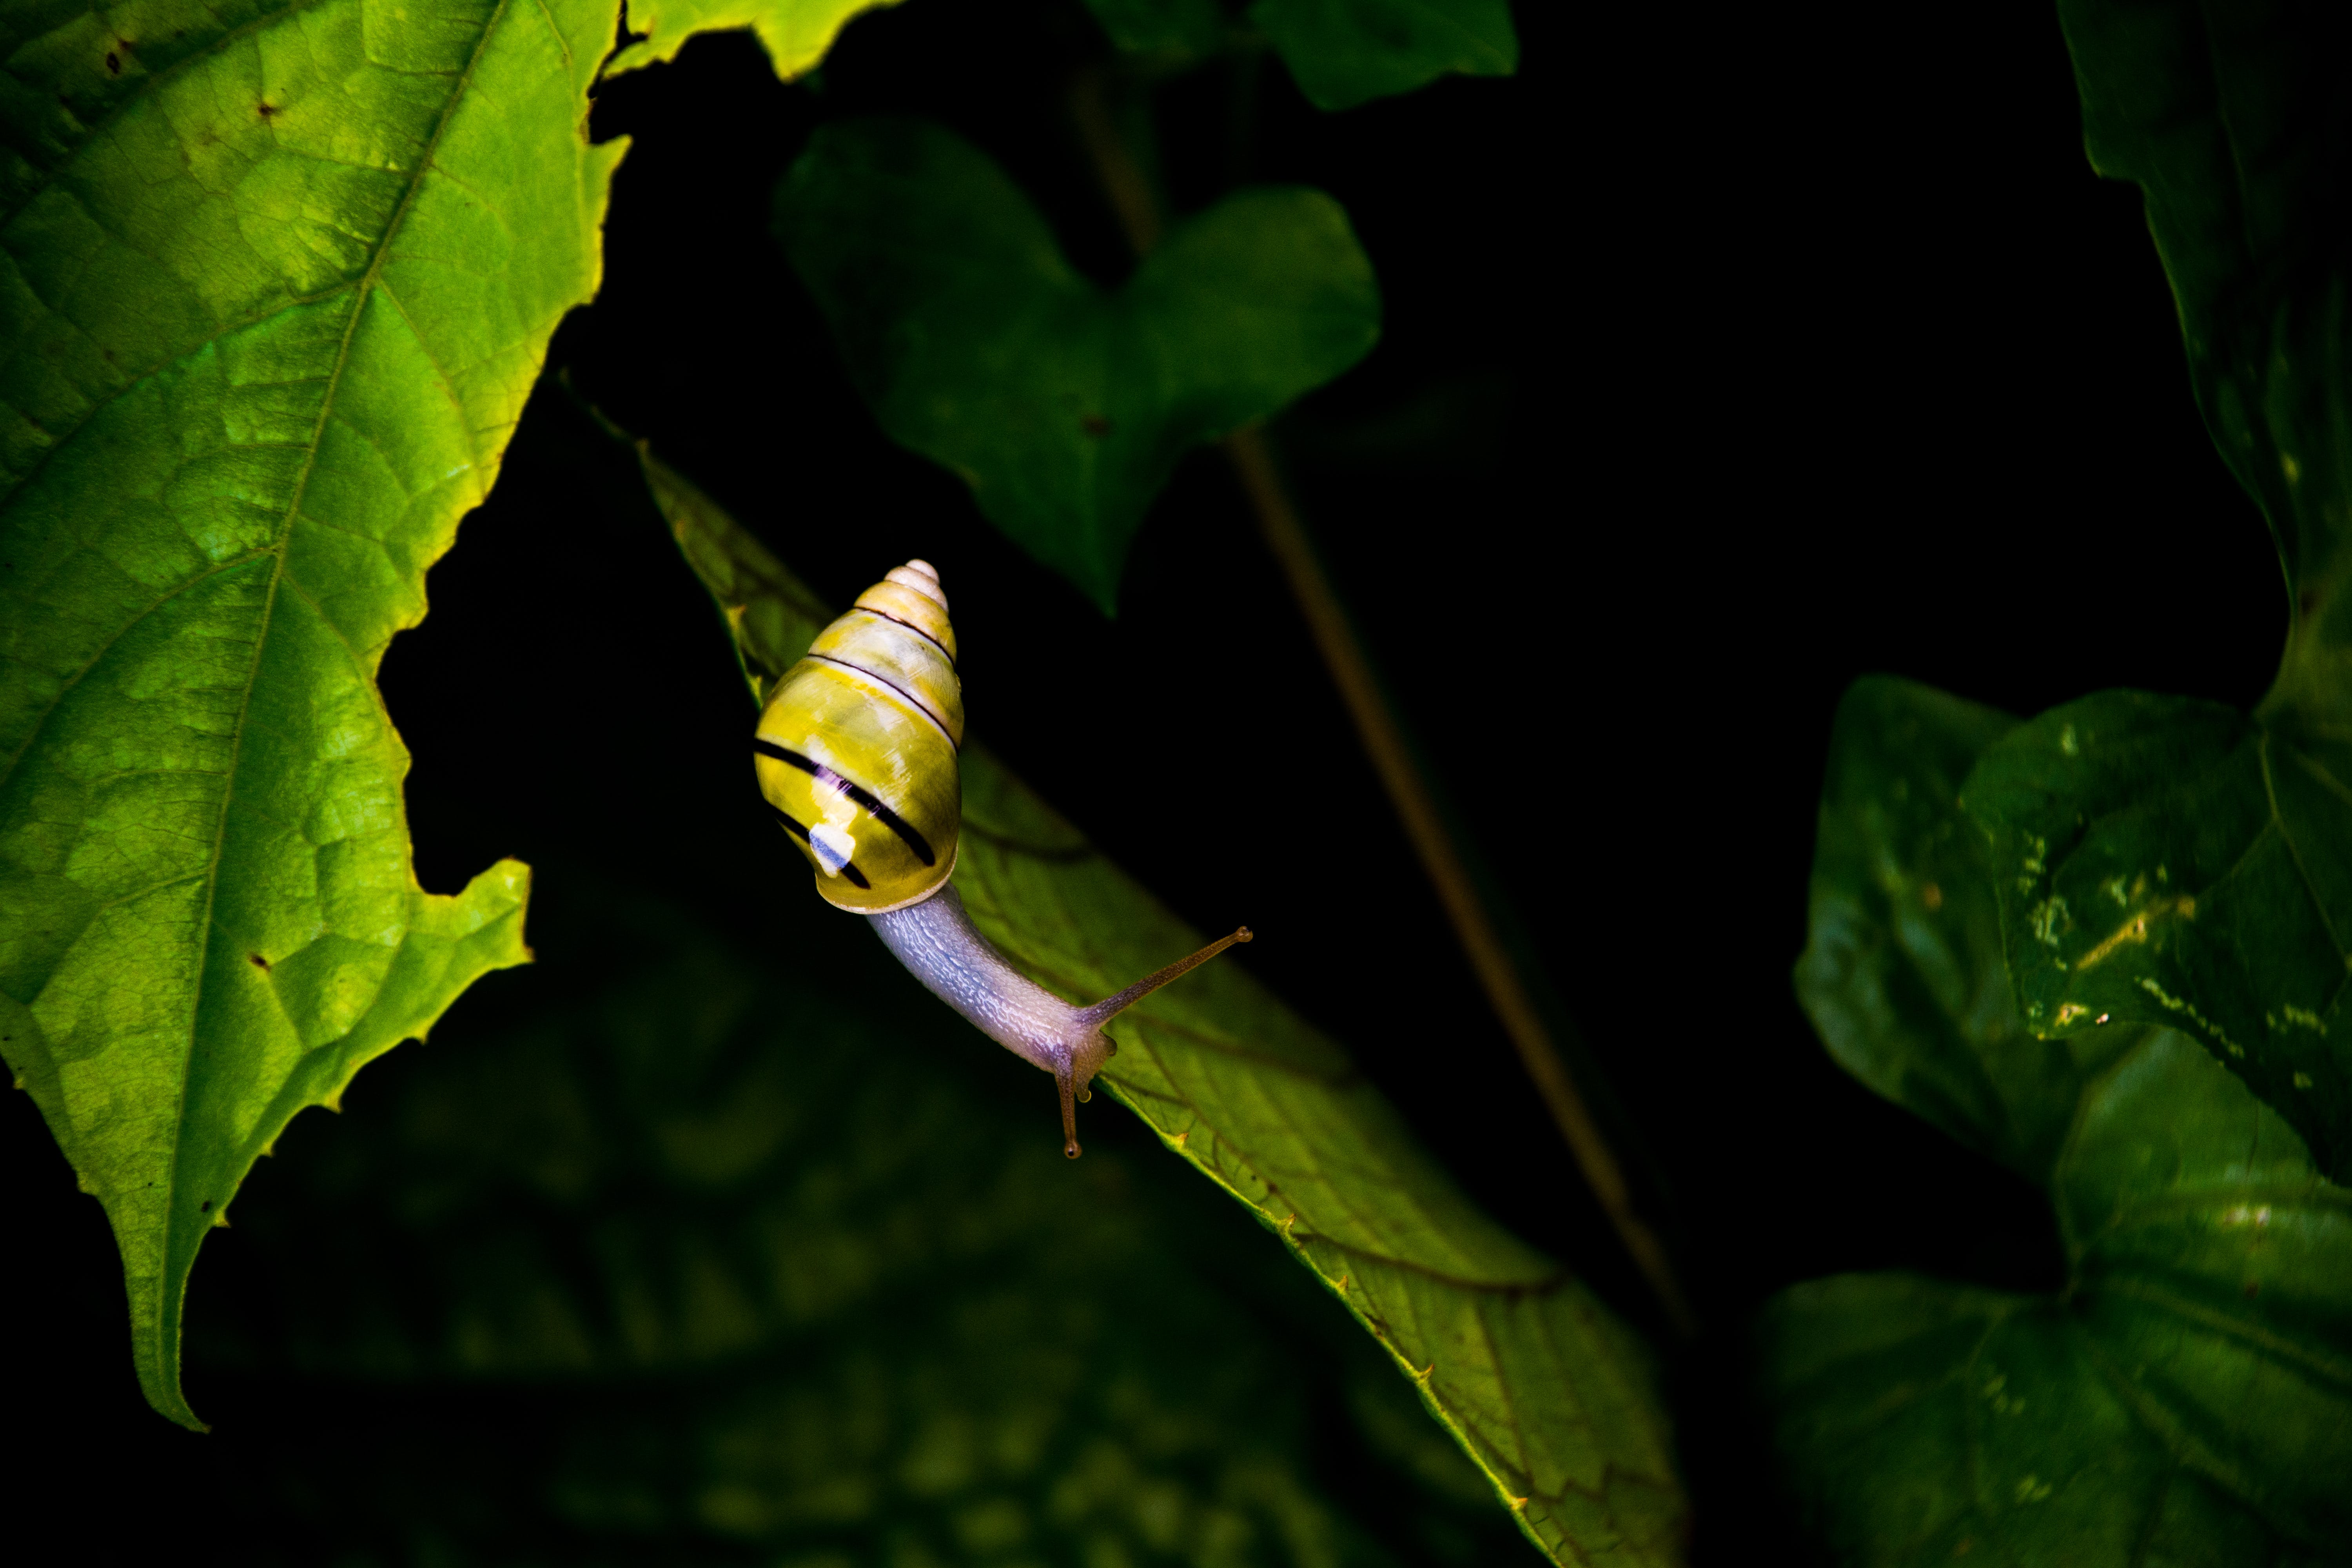 Yellow and Black Stripe Snail on Green Leaf